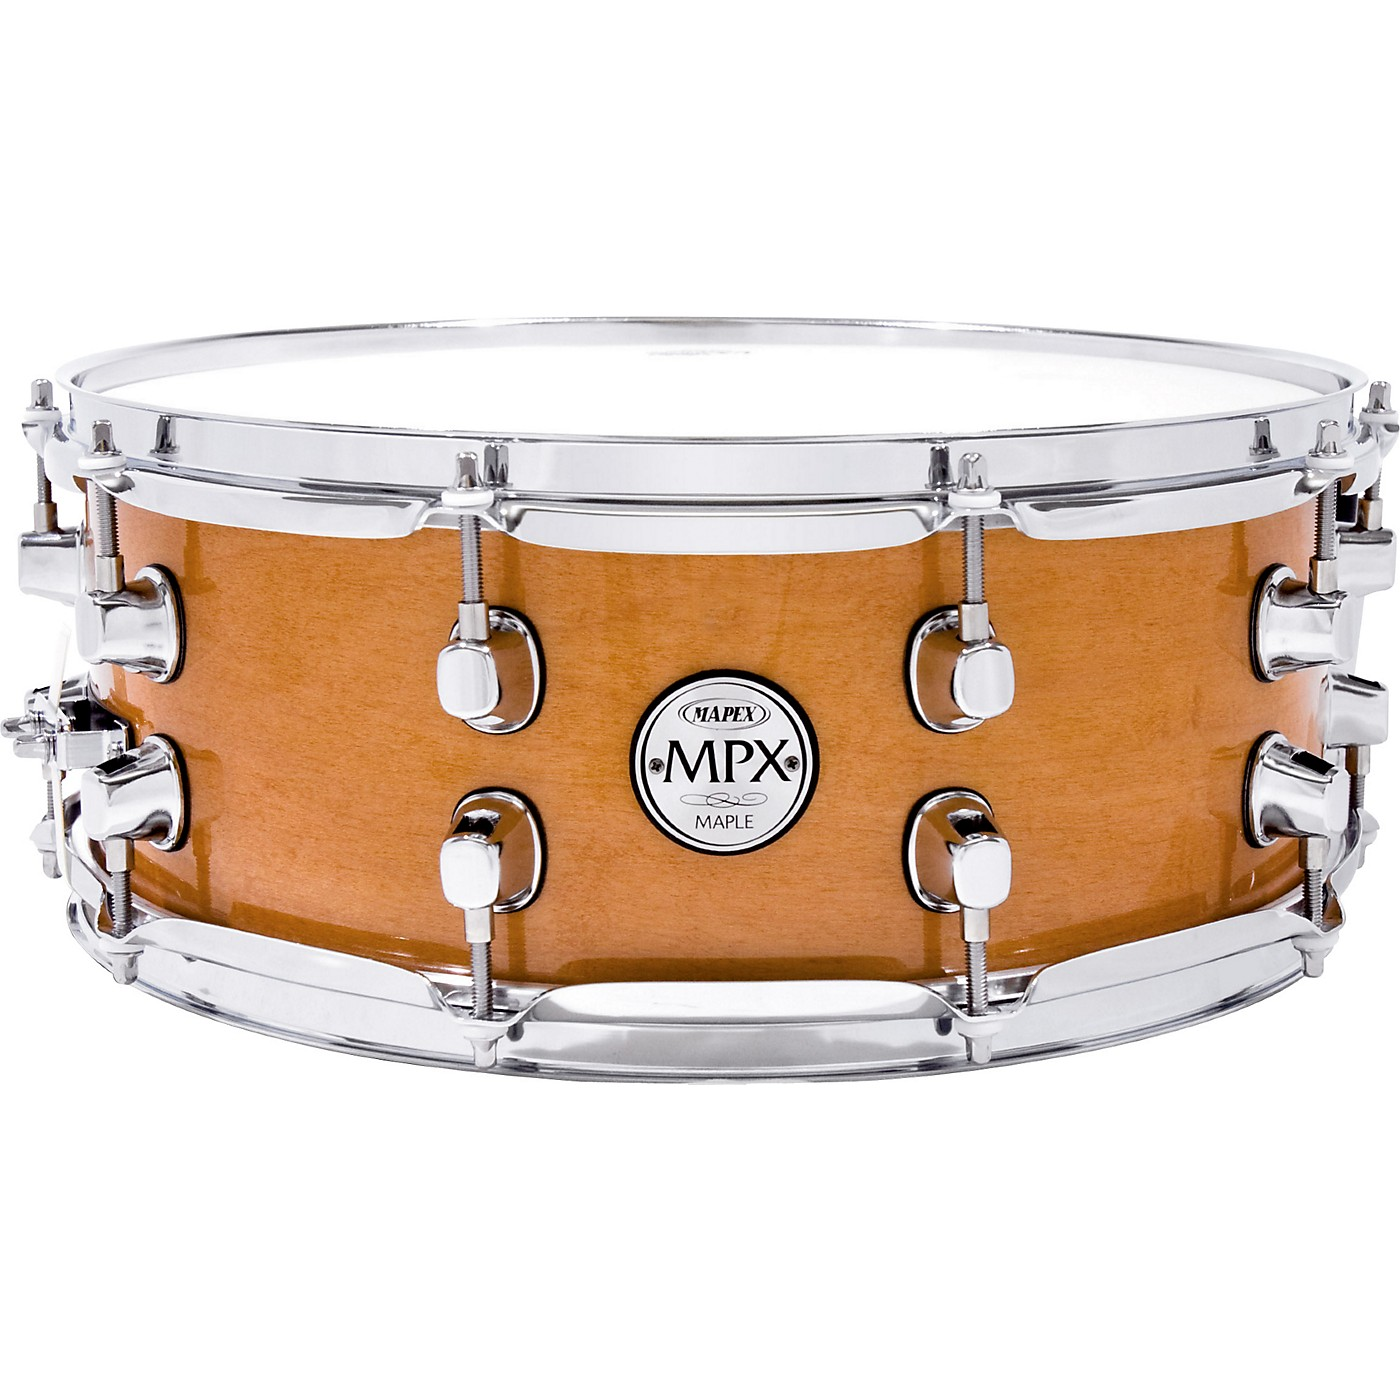 Mapex MPX Maple Snare Drum thumbnail